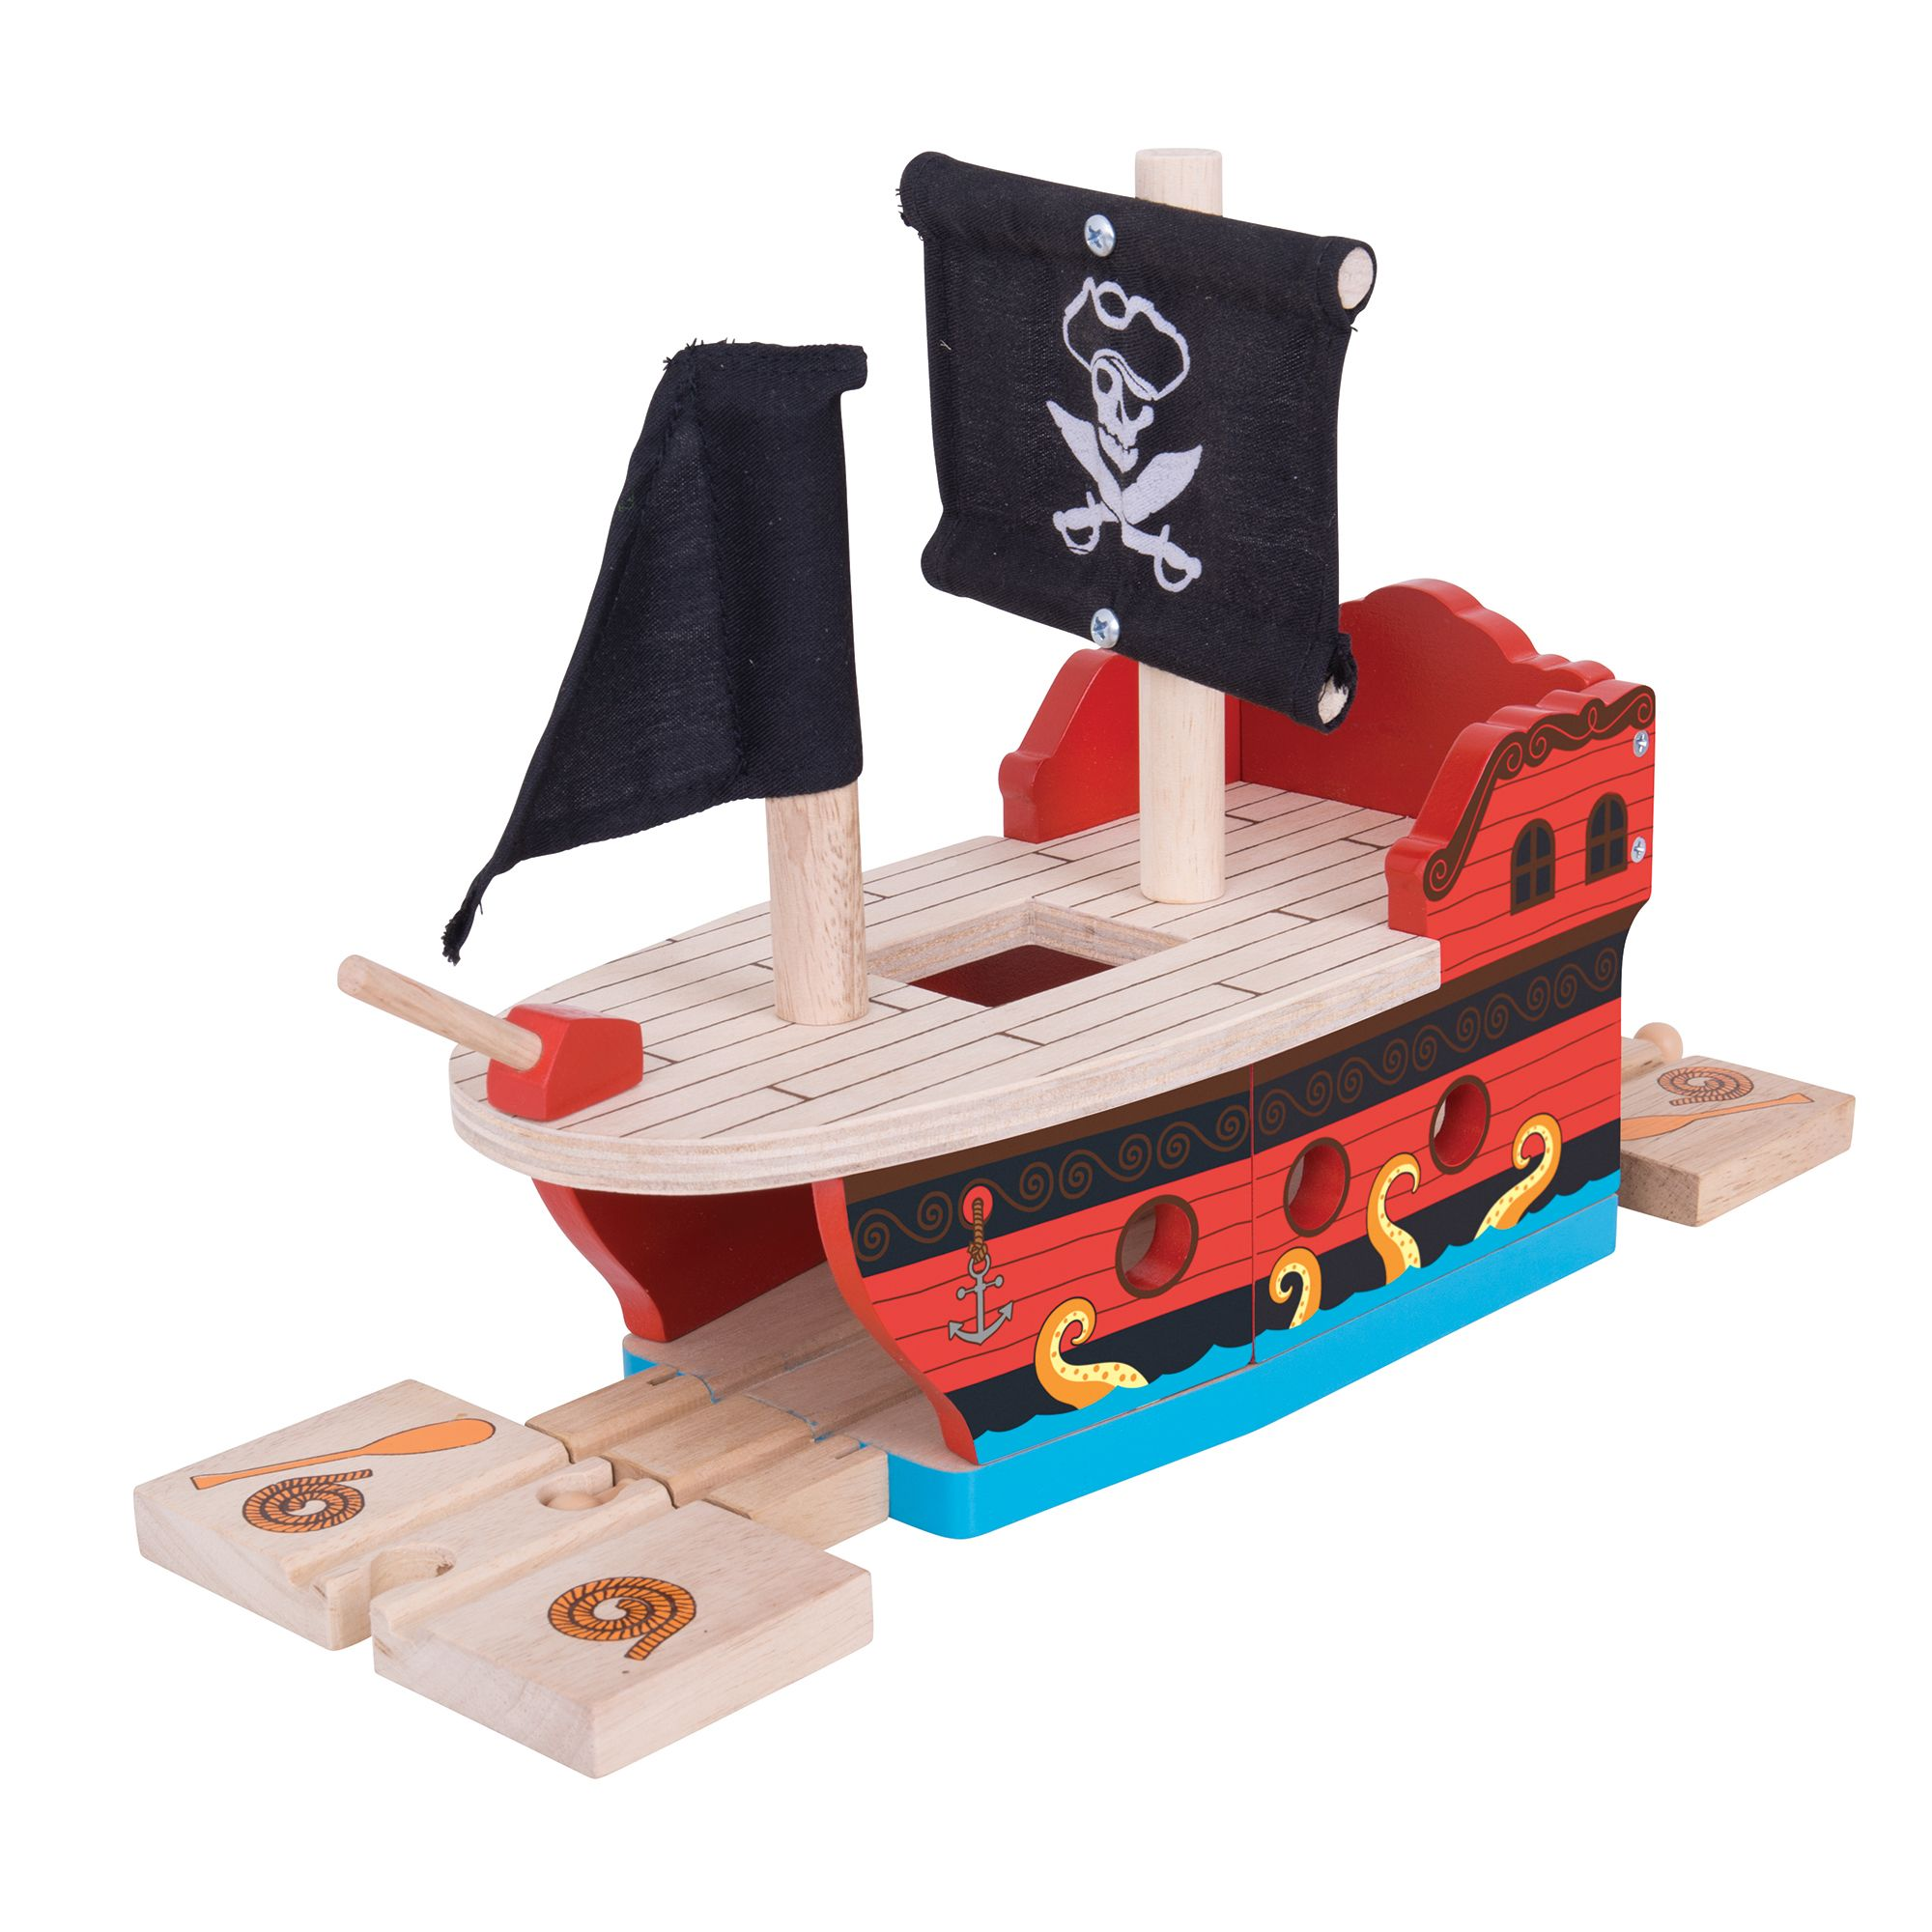 Bigjigs Rail Pirate Galleon